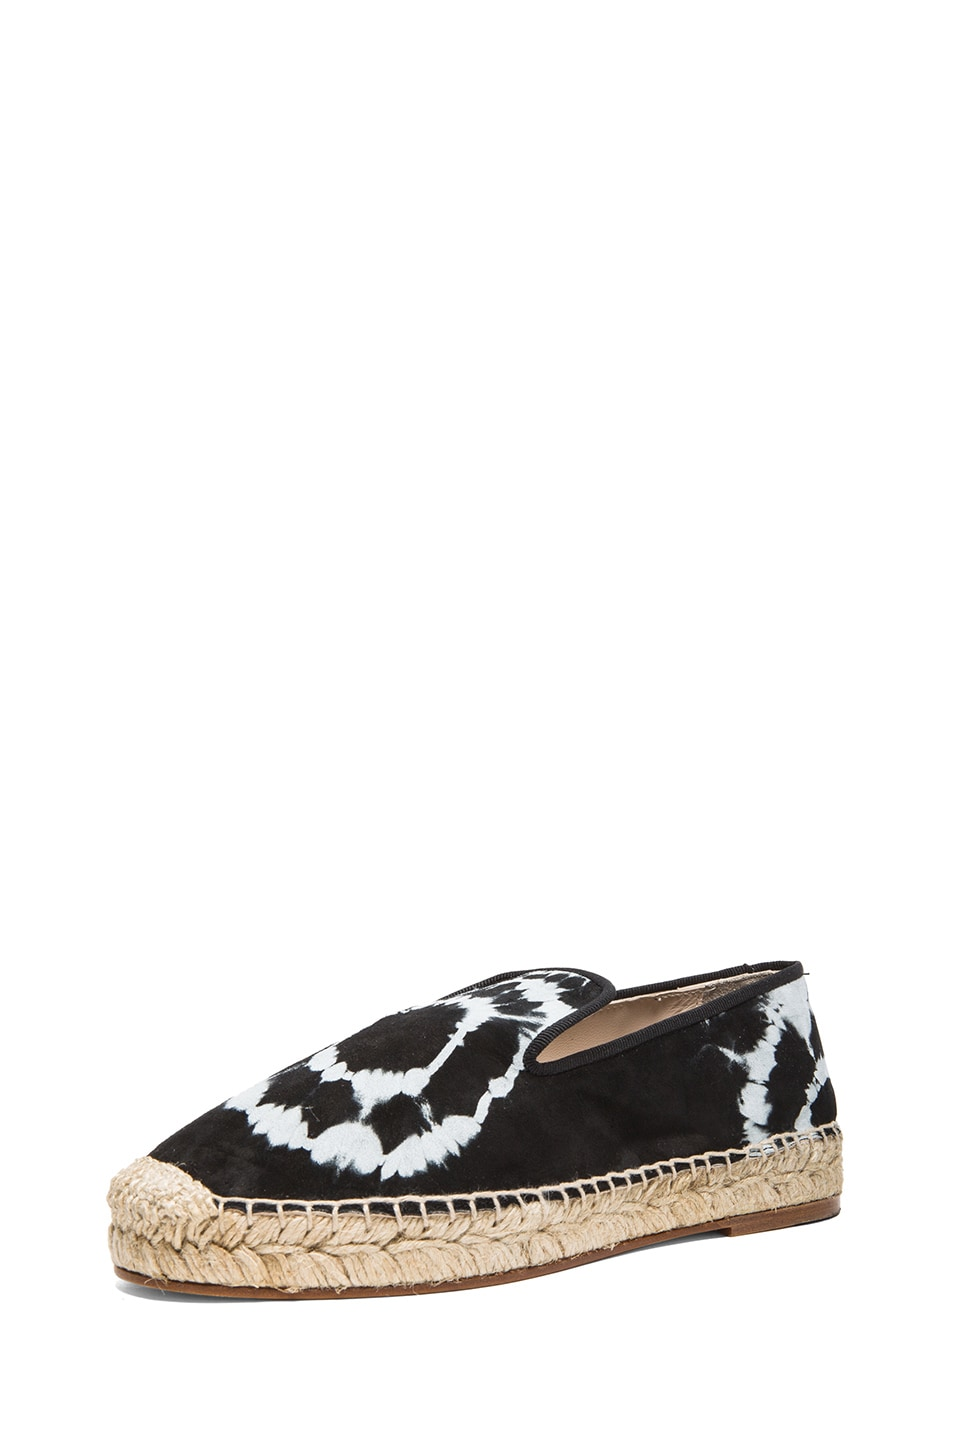 Image 2 of elysewalker los angeles Tie Dye Satik Suede Espadrilles in Black & White